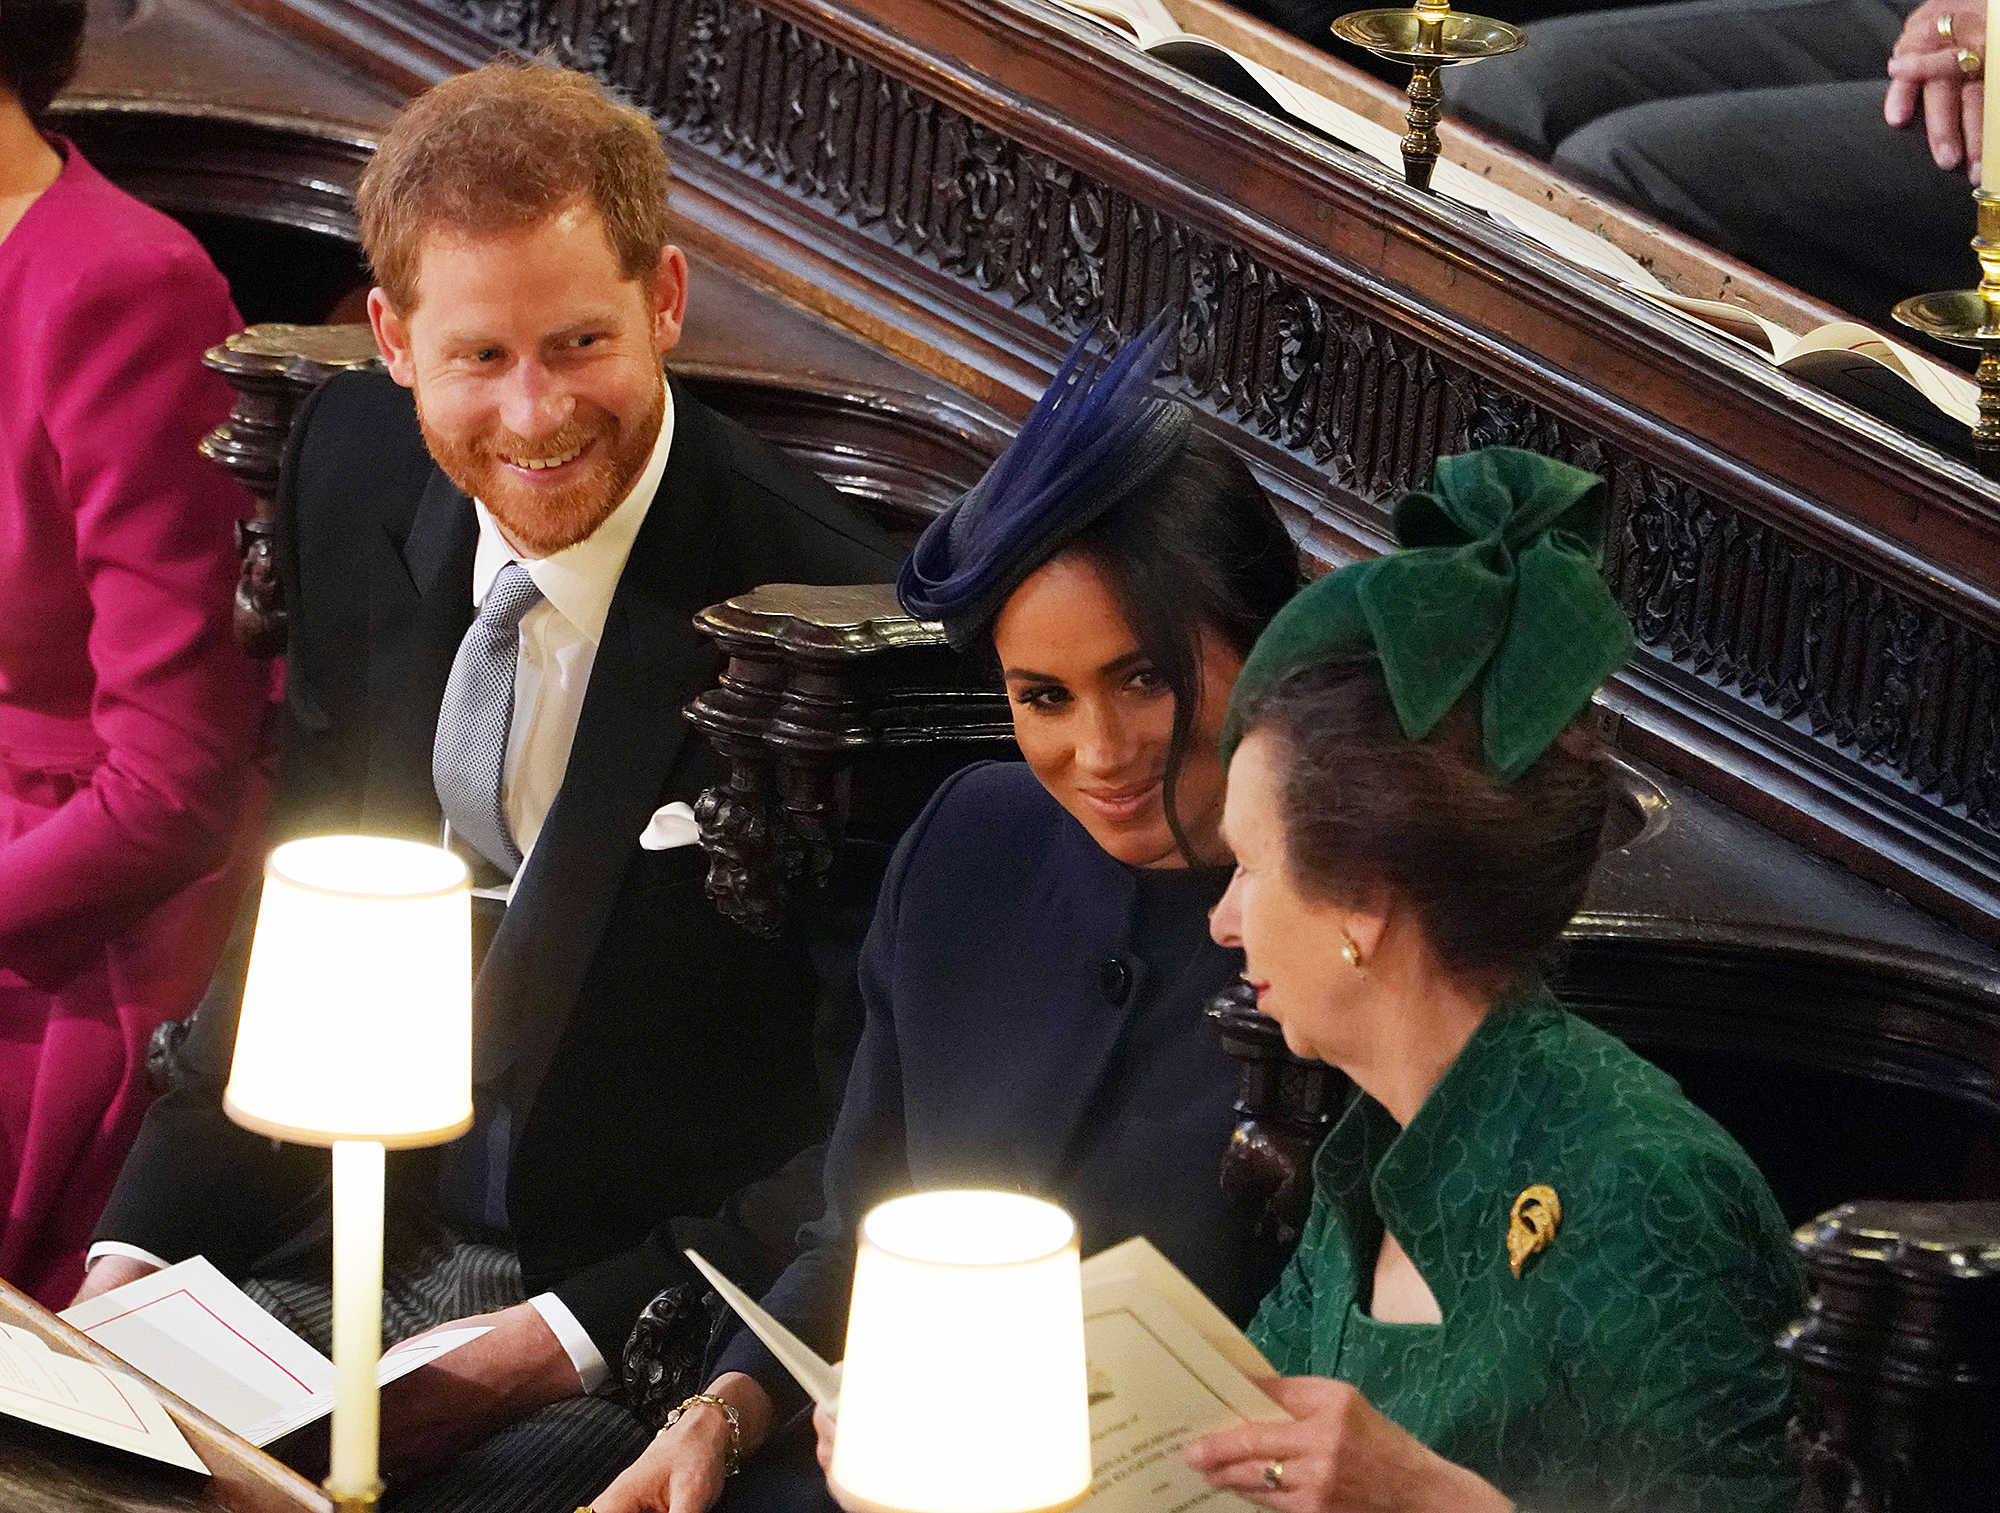 Prince Harry Duchess Meghan Pregnant Royal Family Congratulates - Prince Harry, Duchess Meghan and Princess Anne attend the wedding of Princess Eugenie of York and Mr. Jack Brooksbank at St. George's Chapel on October 12, 2018 in Windsor, England.